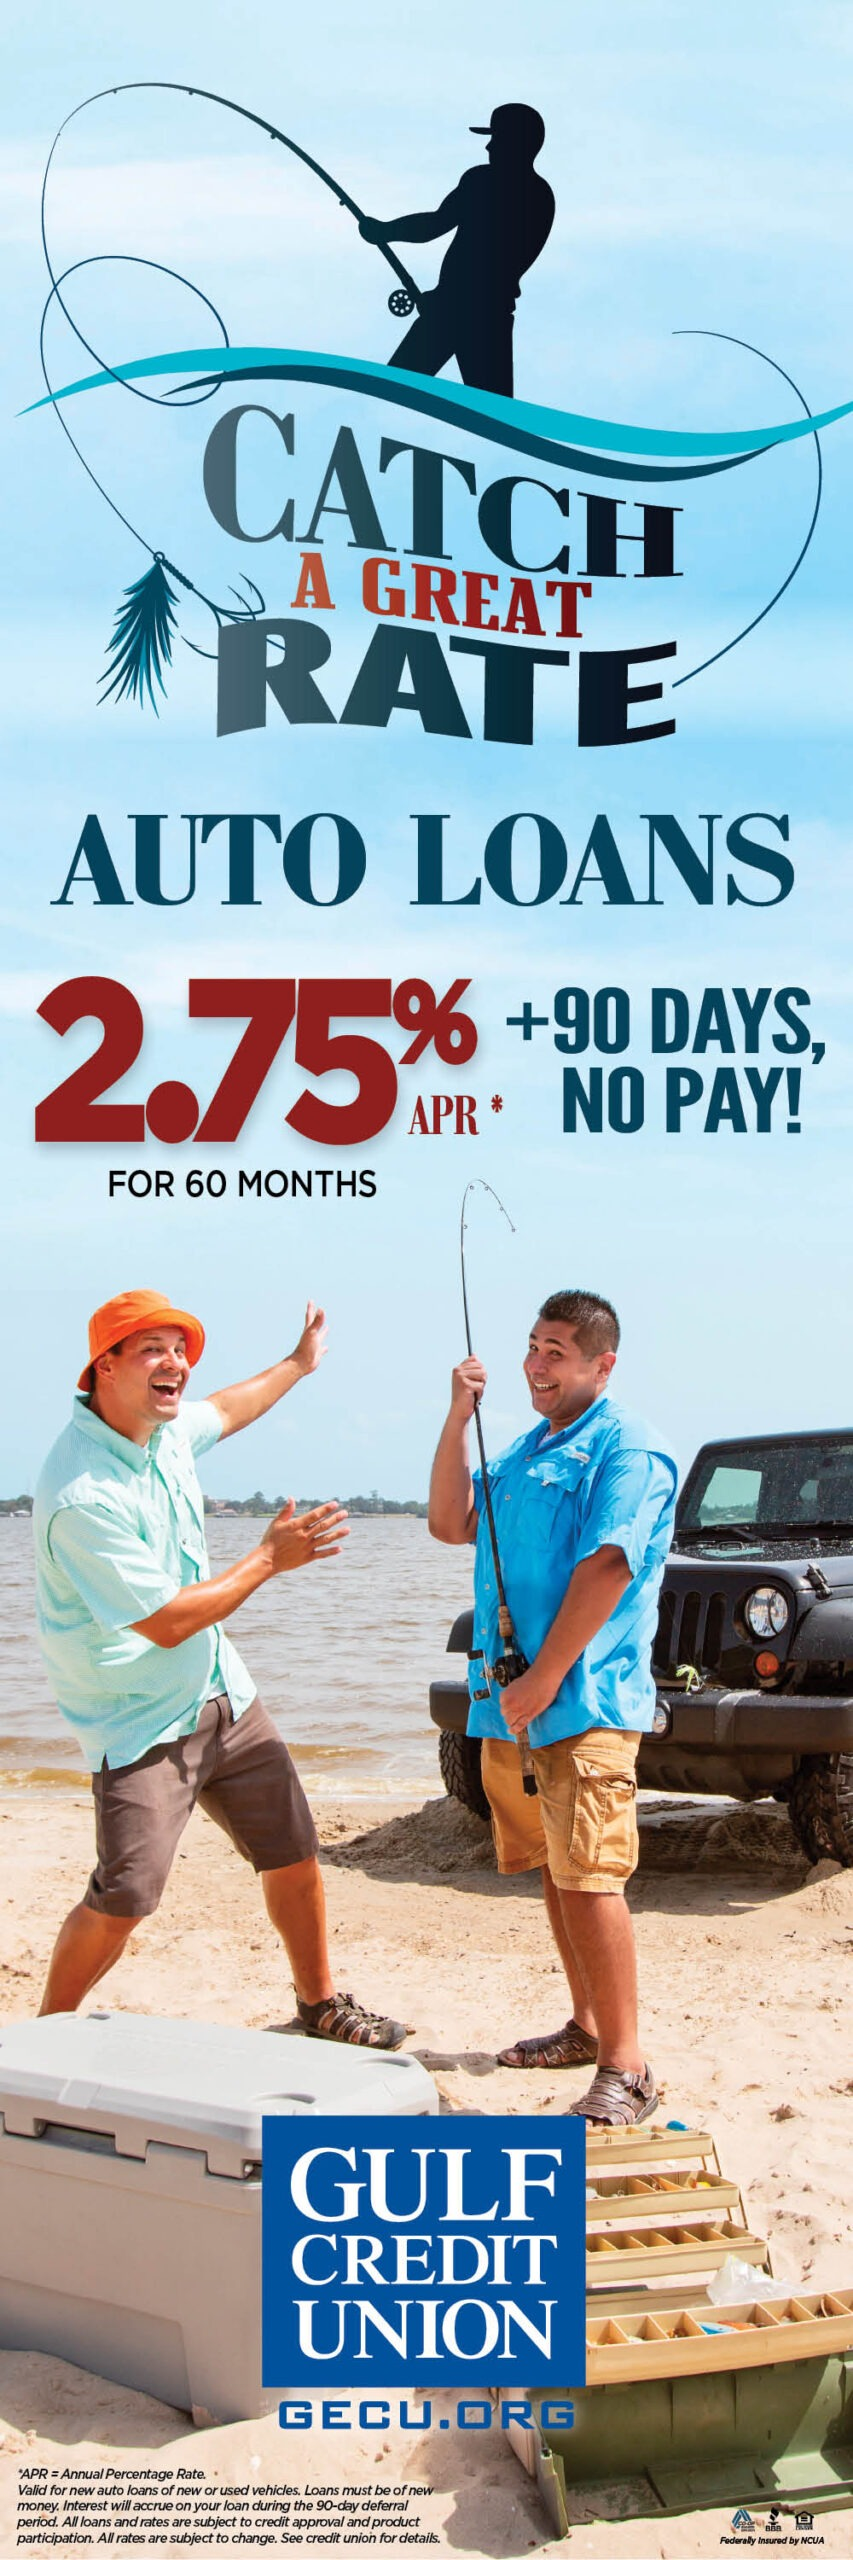 Gulf Credit Union – Catch a Great Rate Campaign